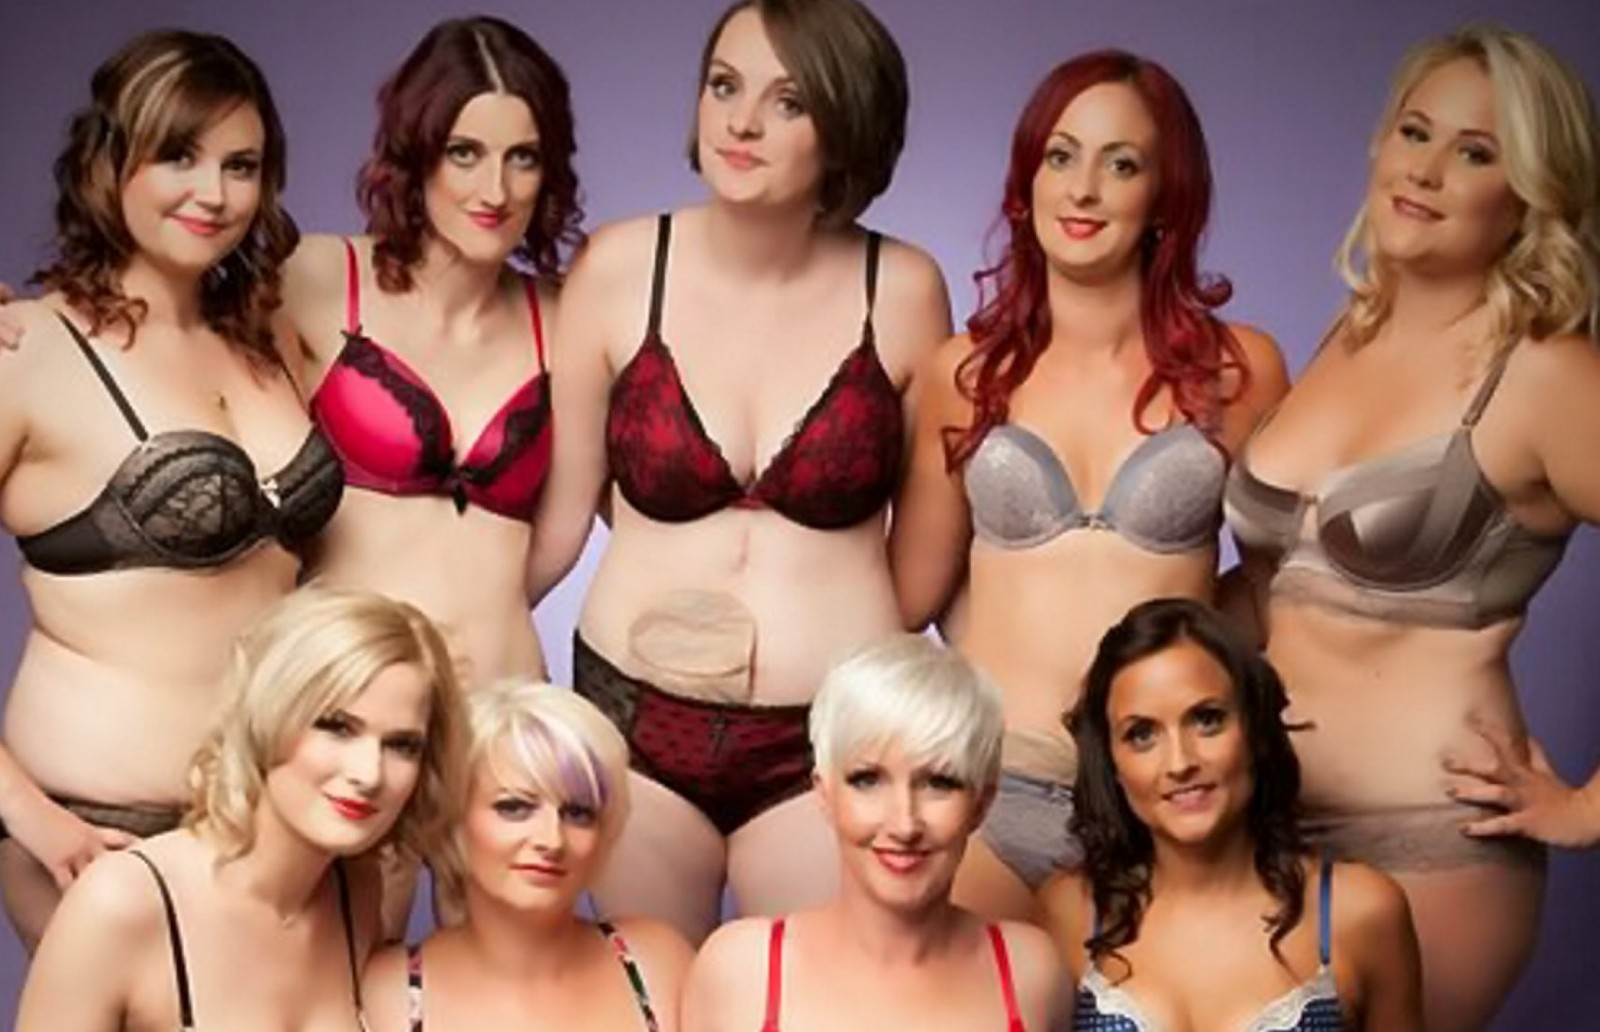 Women with Crohn's disease strip for very inspirational racy calendar